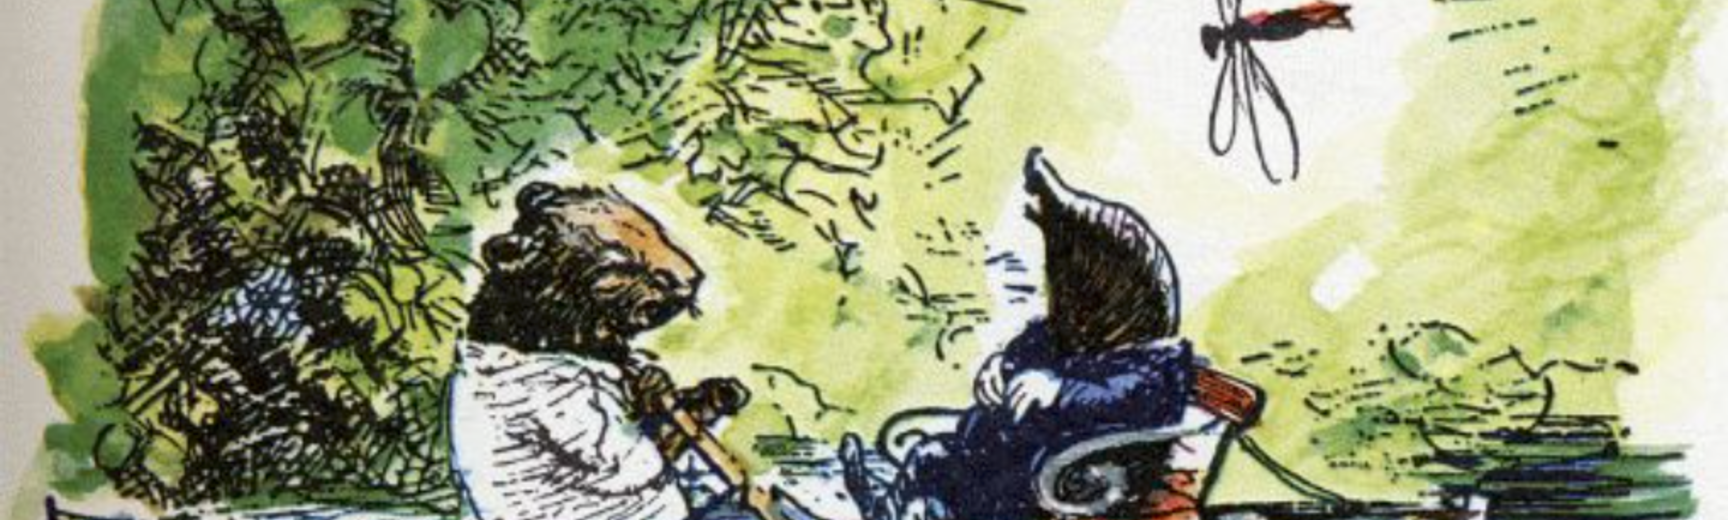 Illustration of Mole and Ratty rowing on a river